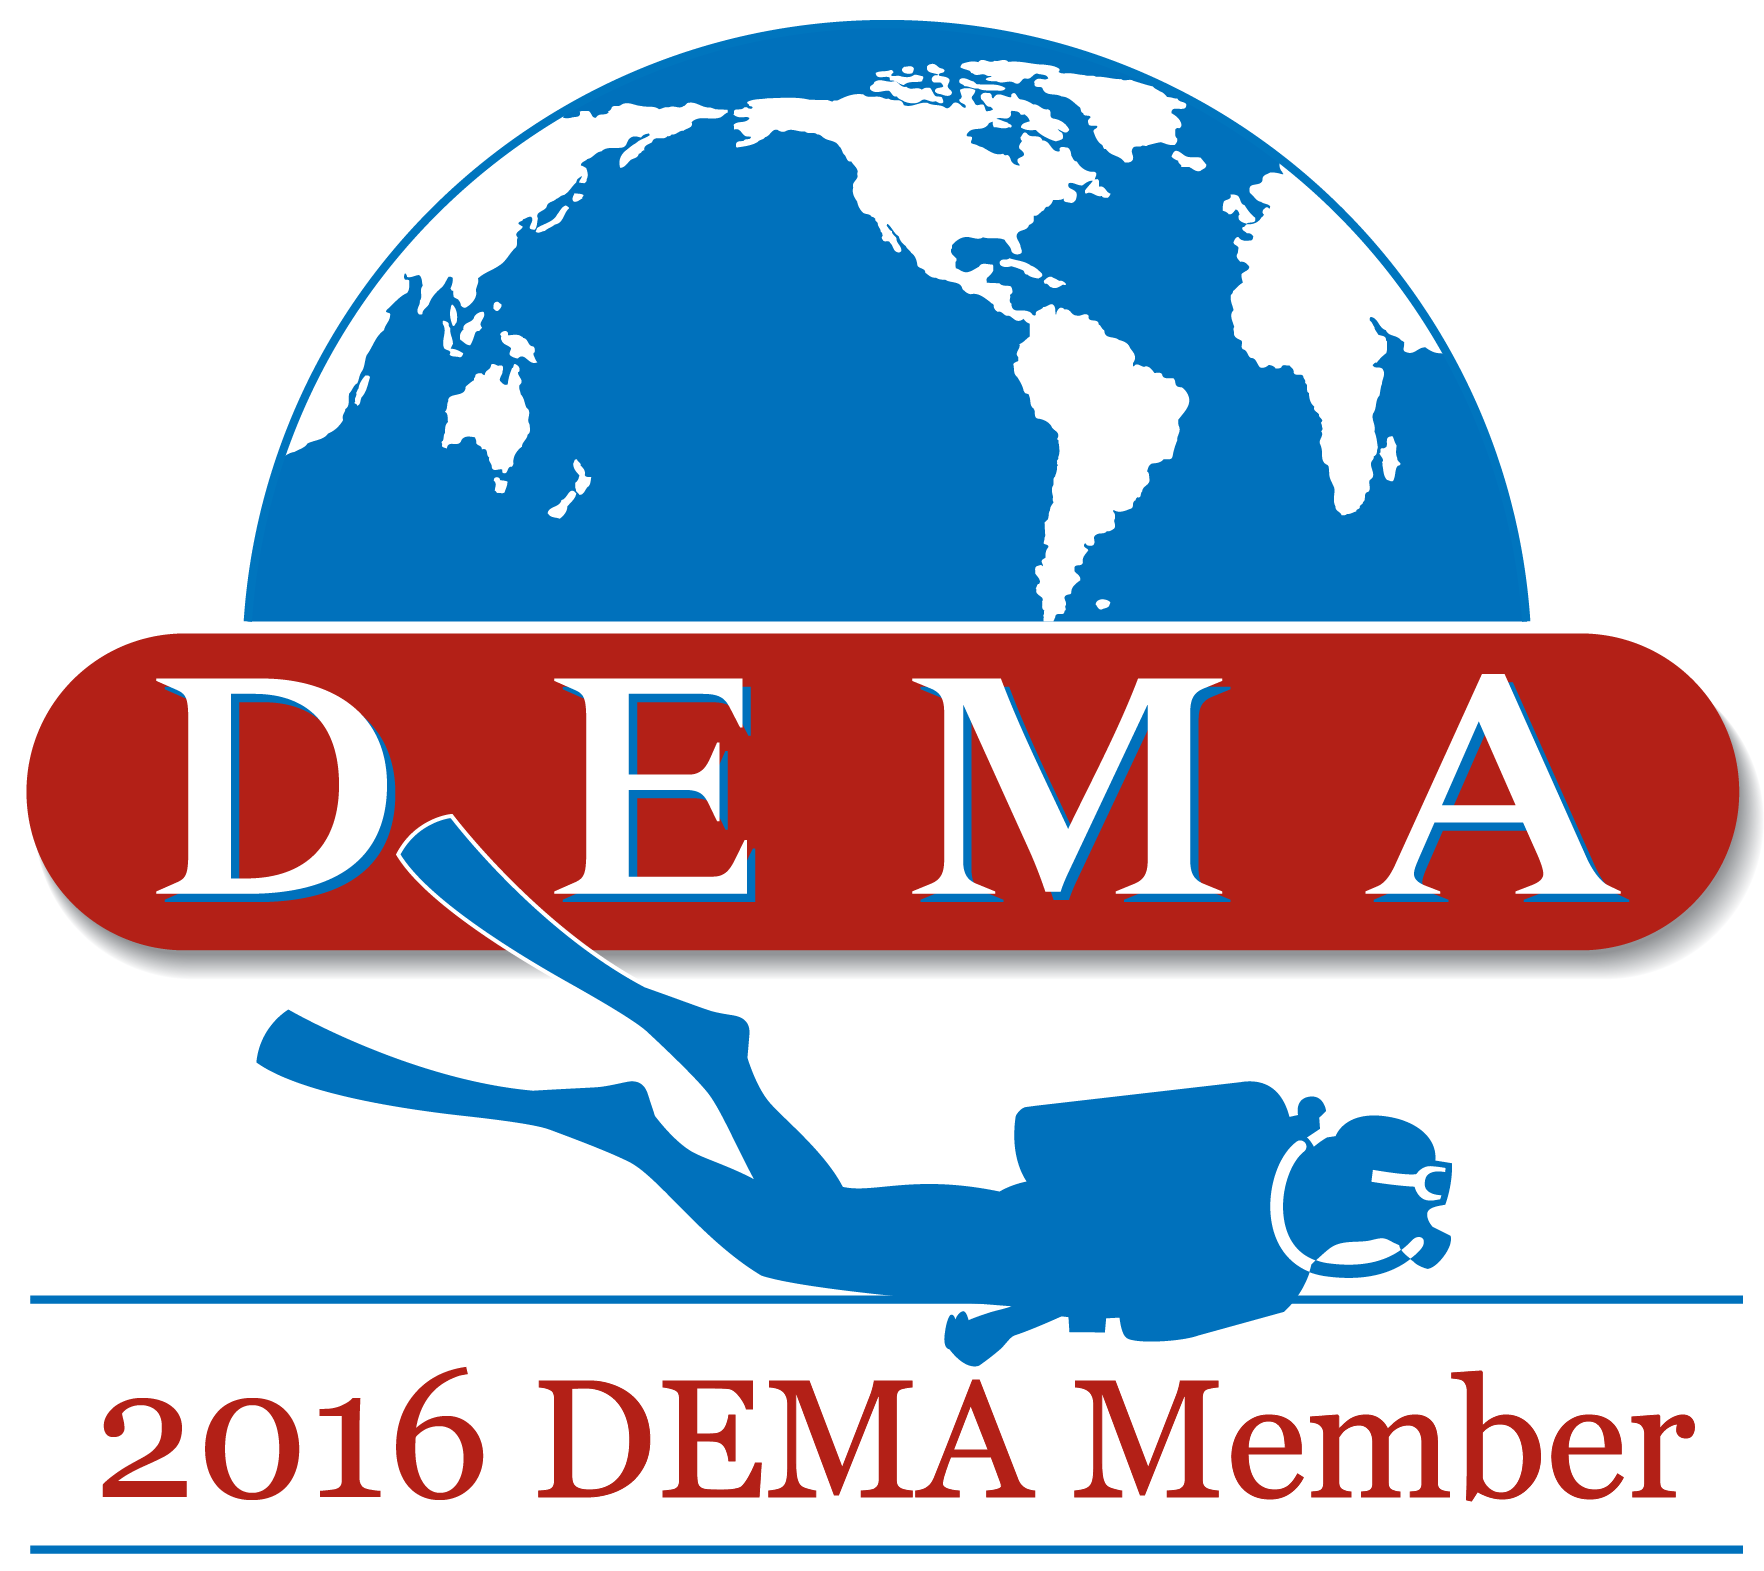 Current DEMA Member